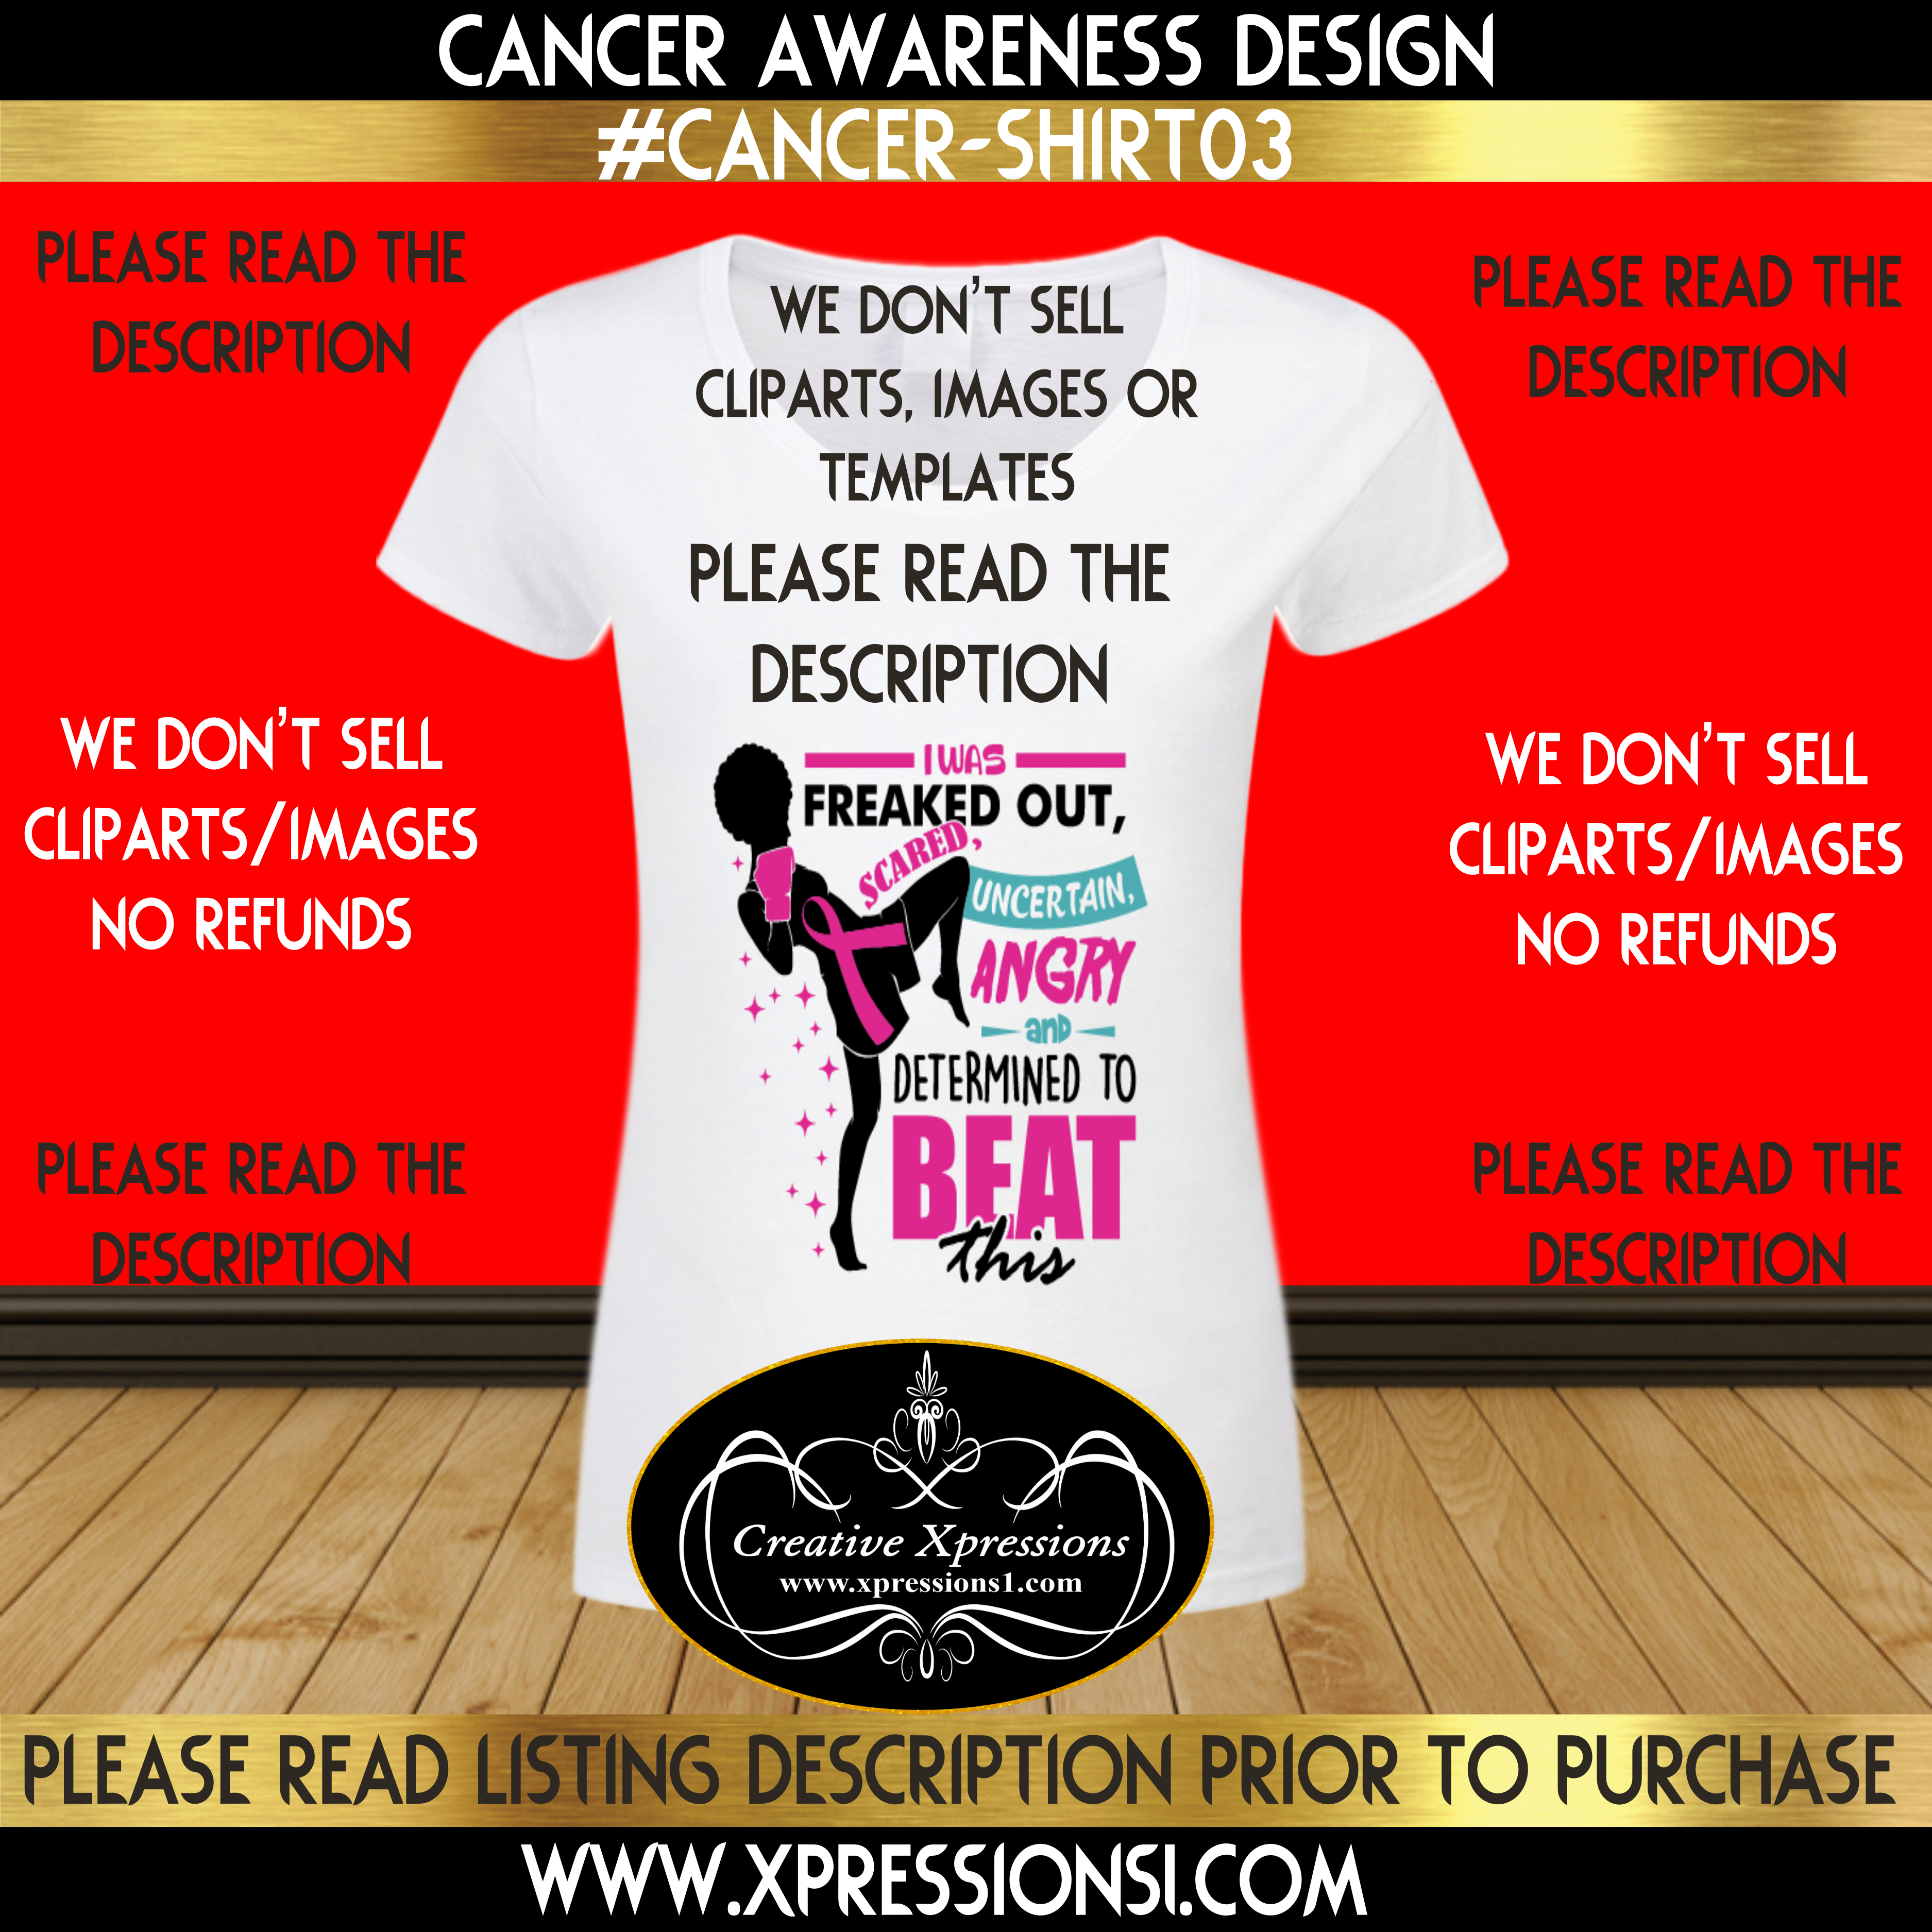 Freaked Out Cancer Awareness T-shirt